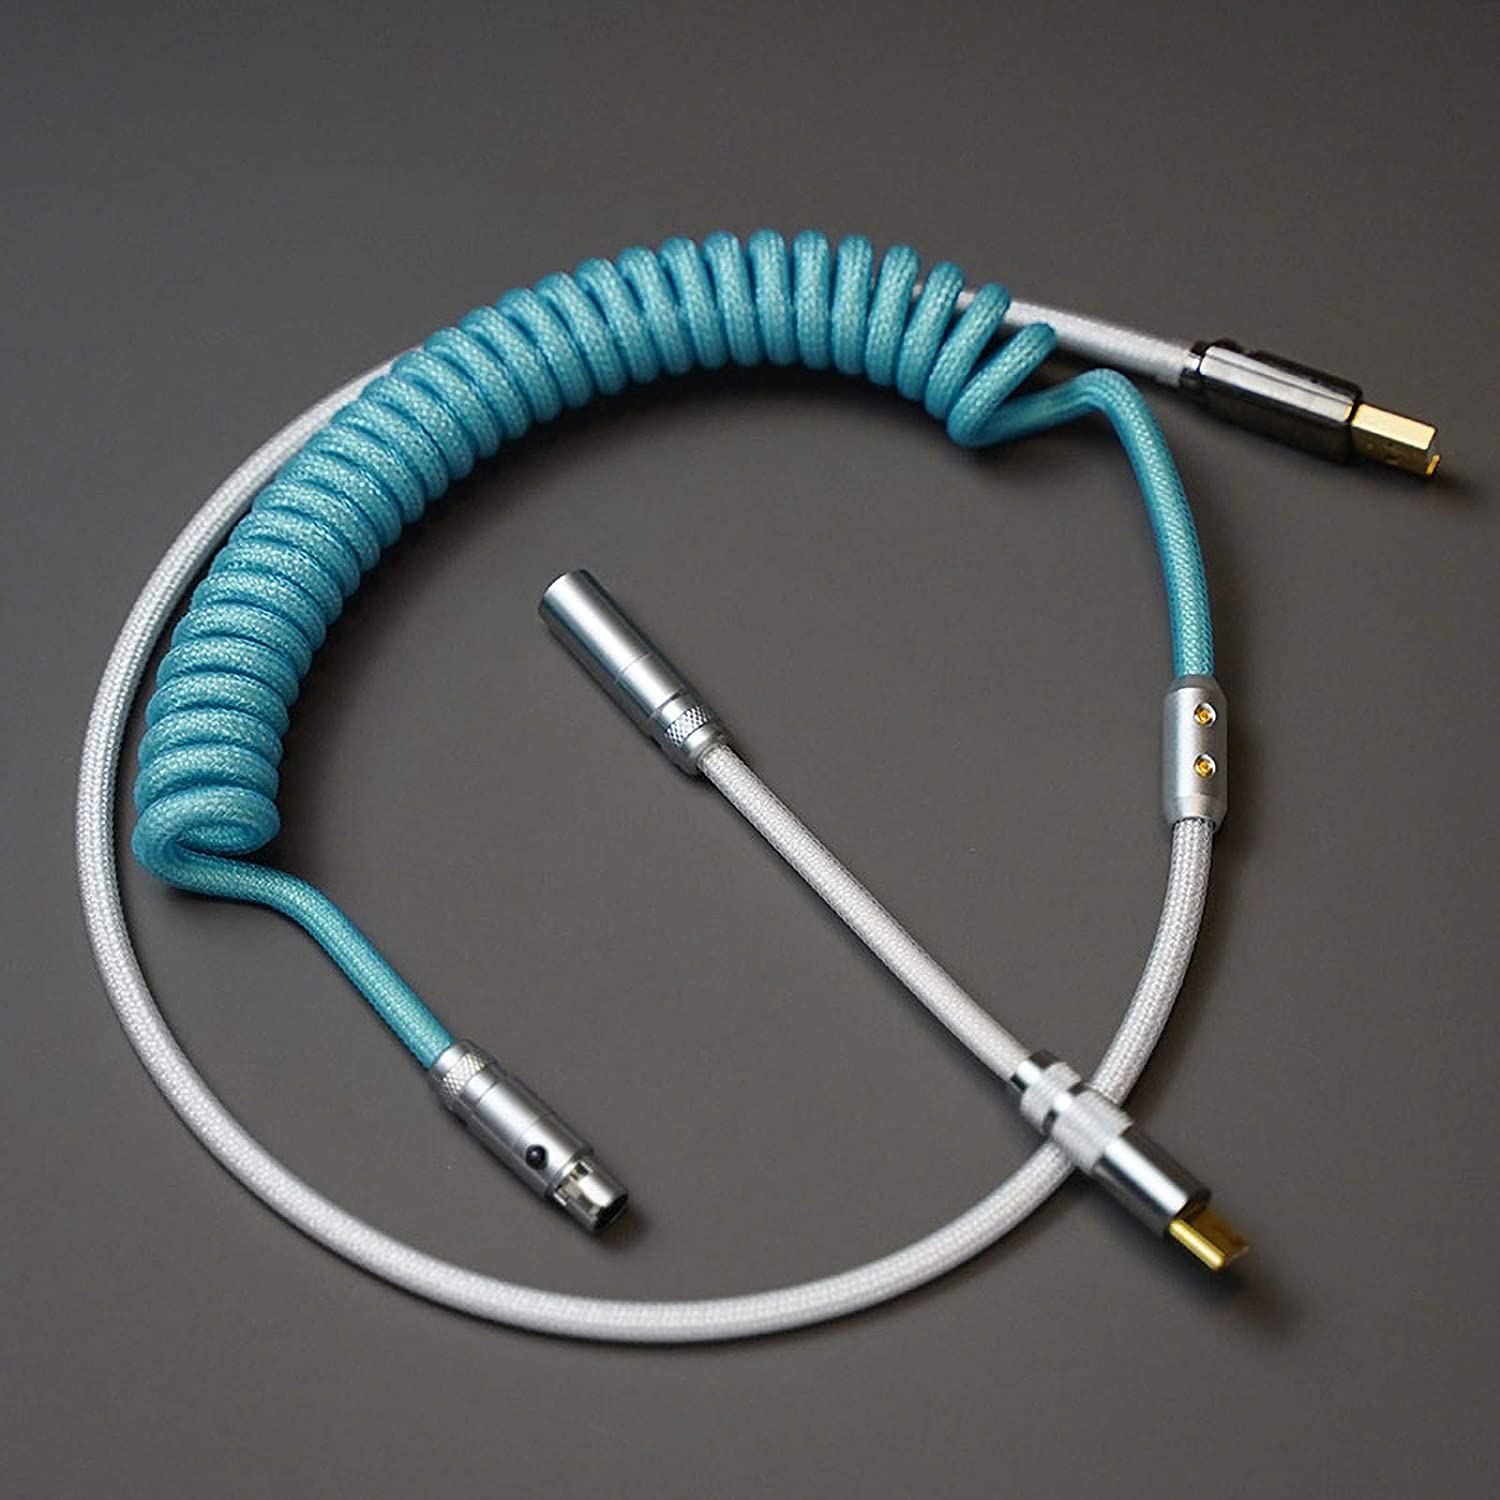 Type-C Interface Be super welcome New Free Shipping USB Cable 100 cm for Spiral Spr Keyboard